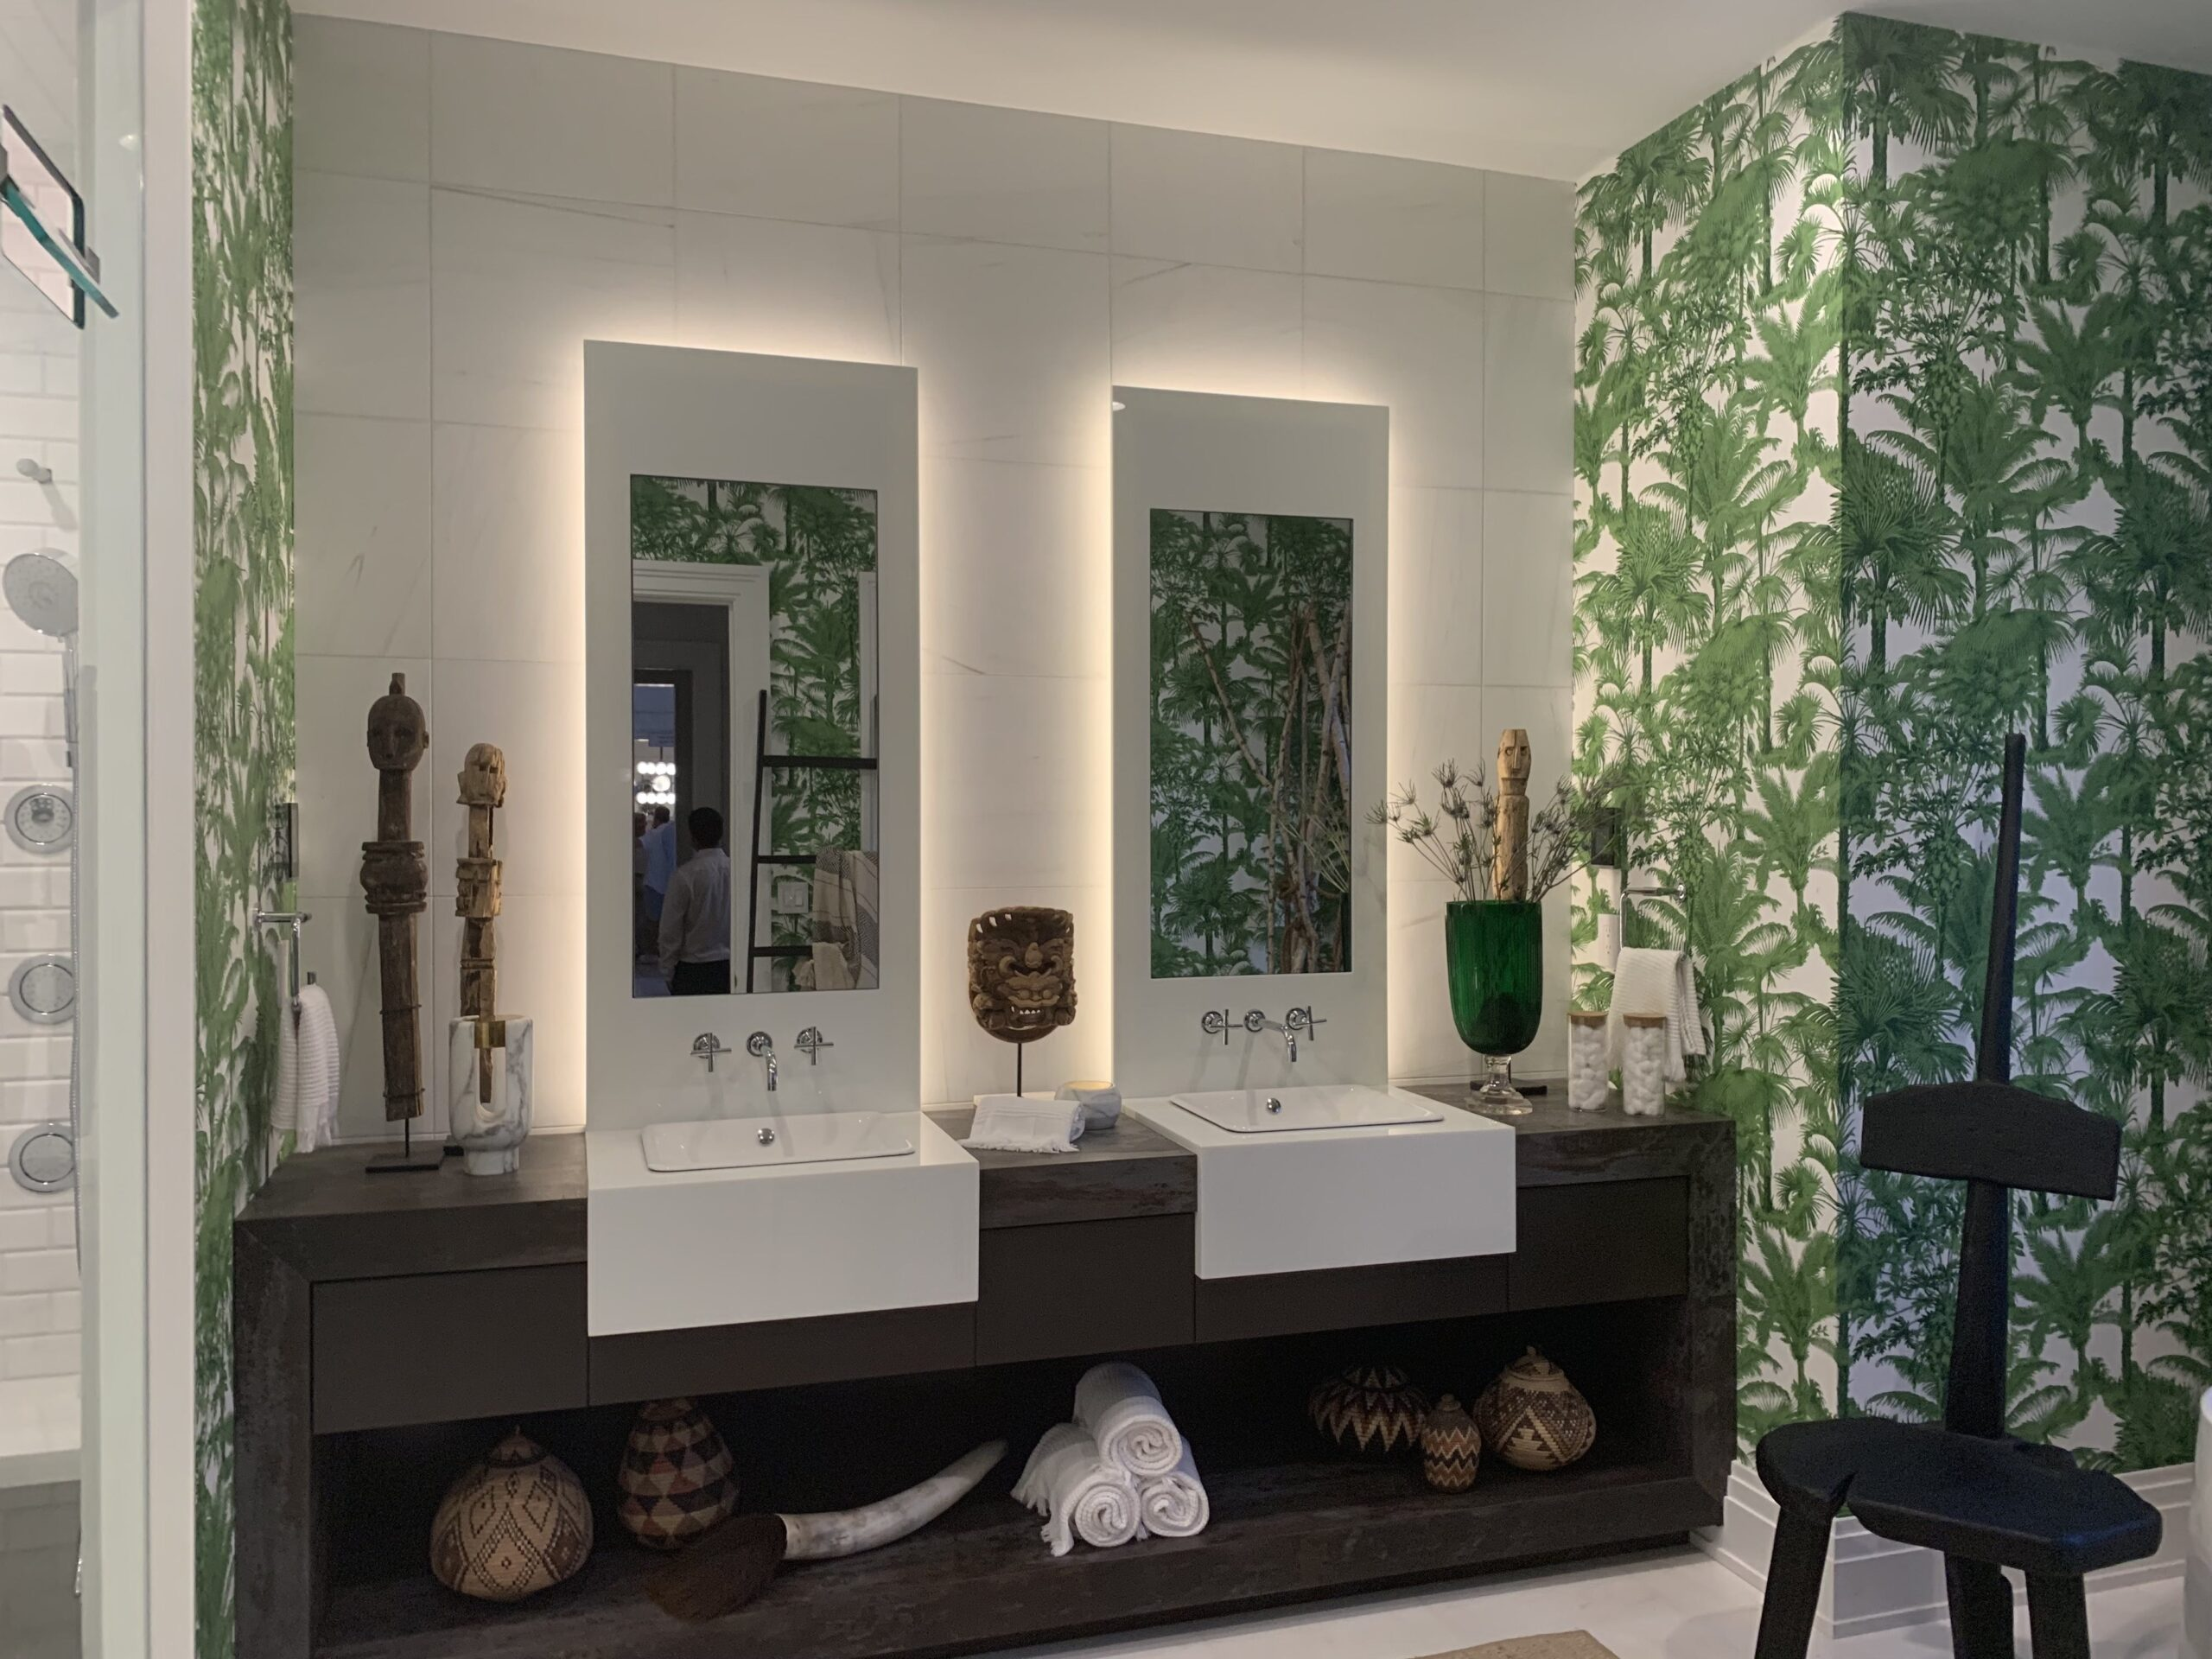 Image of 20190721 000914893 iOS 1 1 scaled in Cosentino Sponsors the 2019 Hampton Designer Showhouse, Presented by Traditional Home - Cosentino